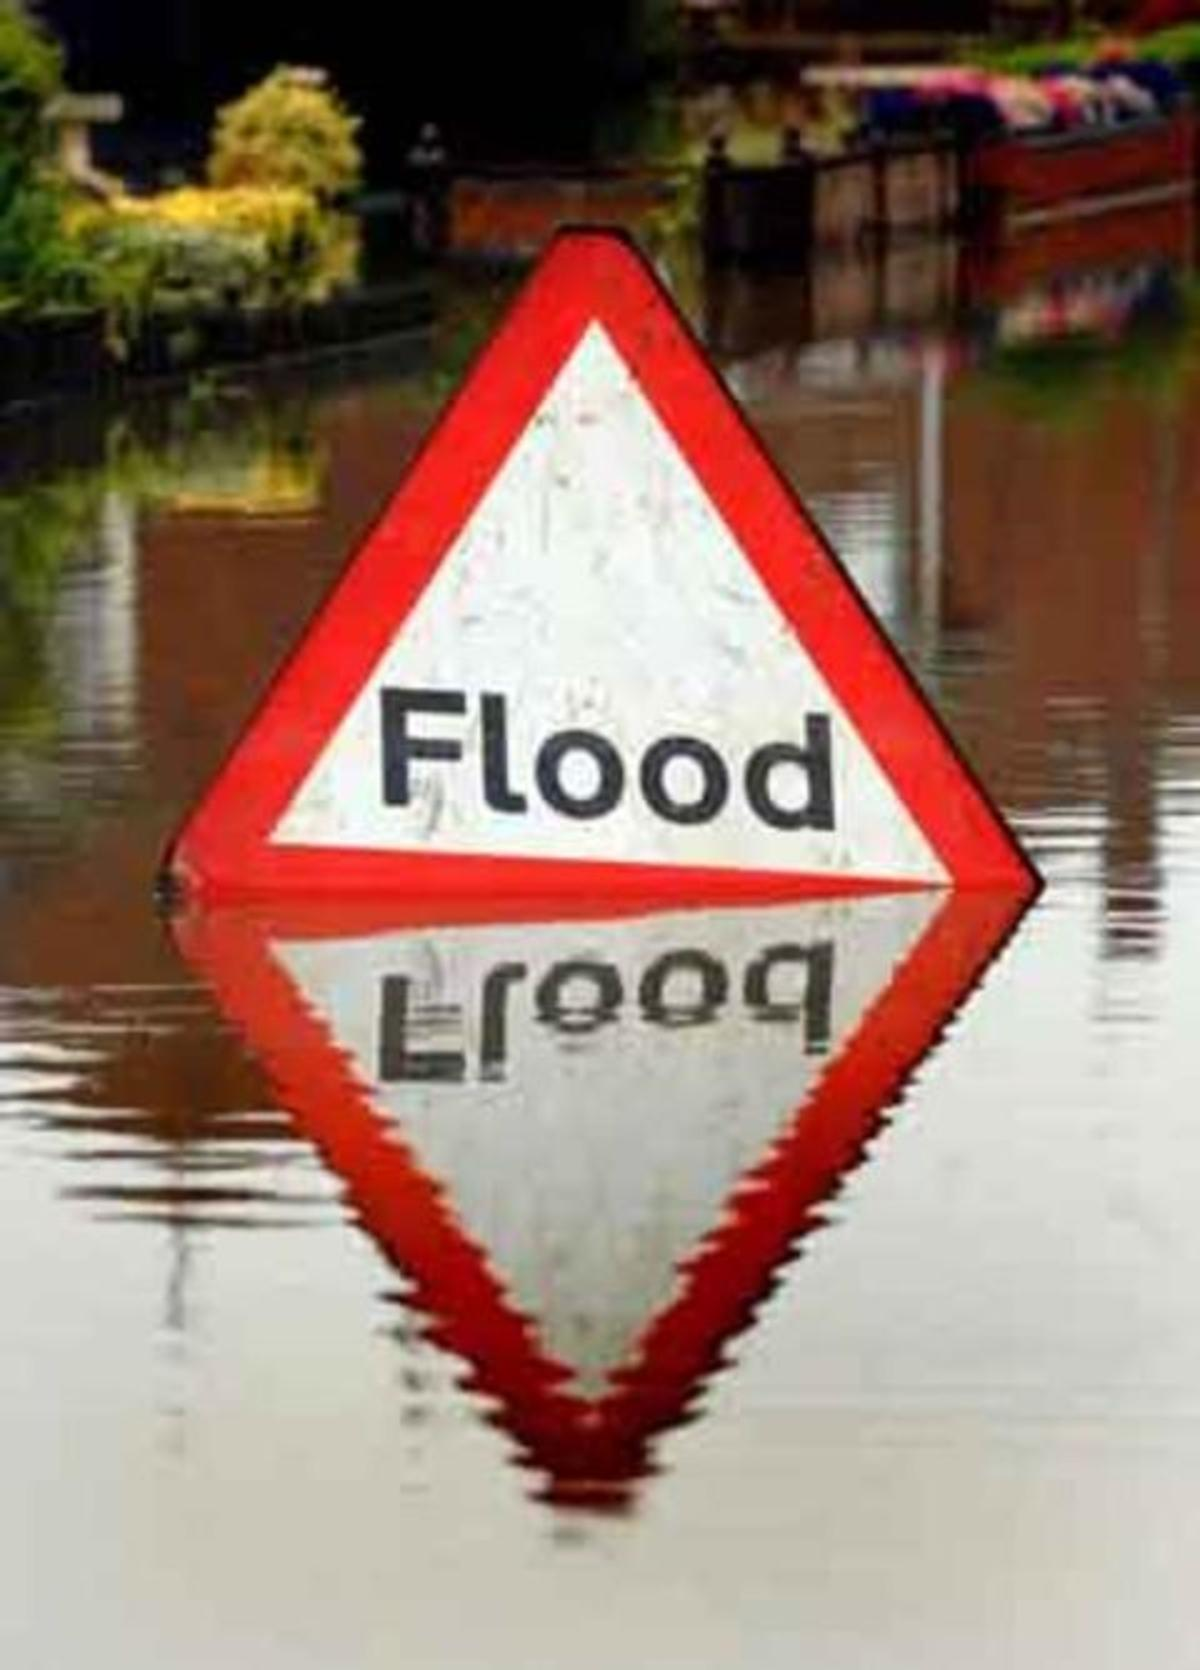 Diversions in place for flooded routes